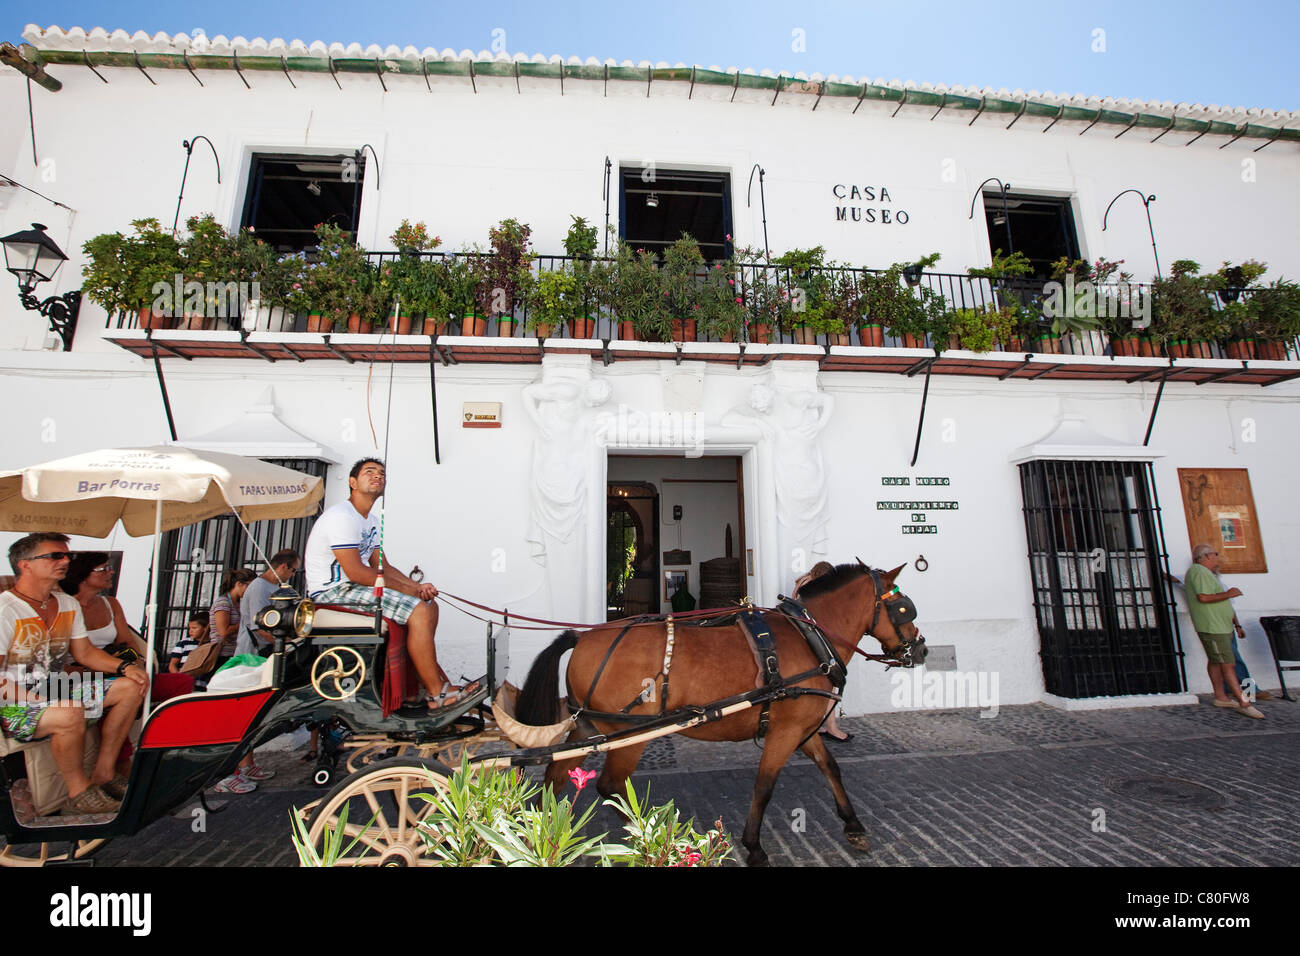 Car rides horses and Museum House Mijas Malaga Costa del Sol Andalusia Spain - Stock Image